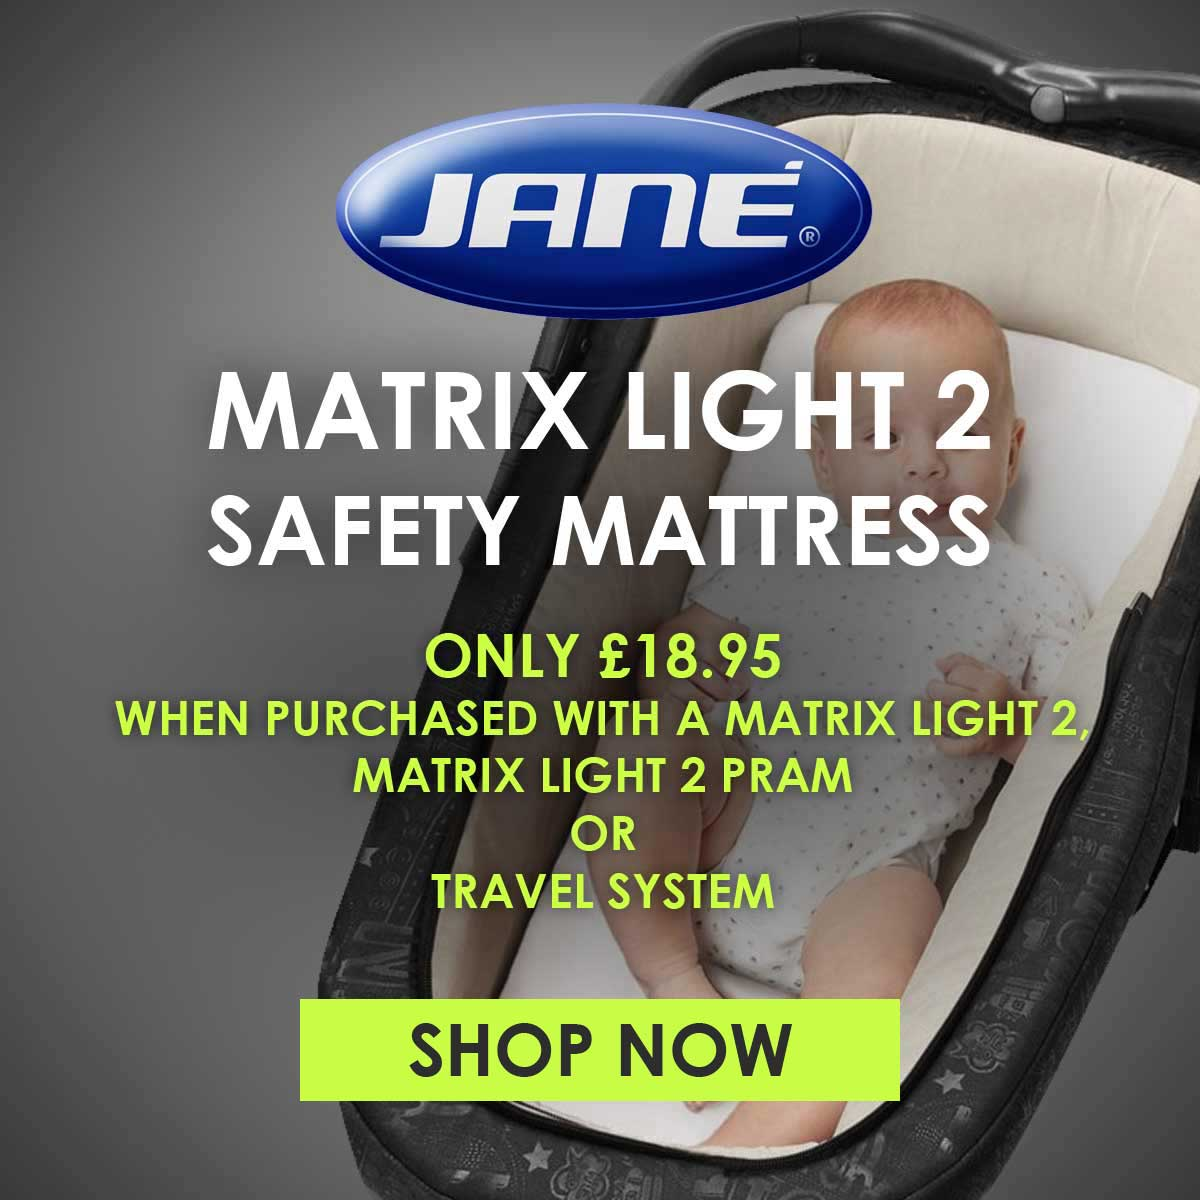 Jane Safety Mattress for Matrix Light 2 Basket Offer